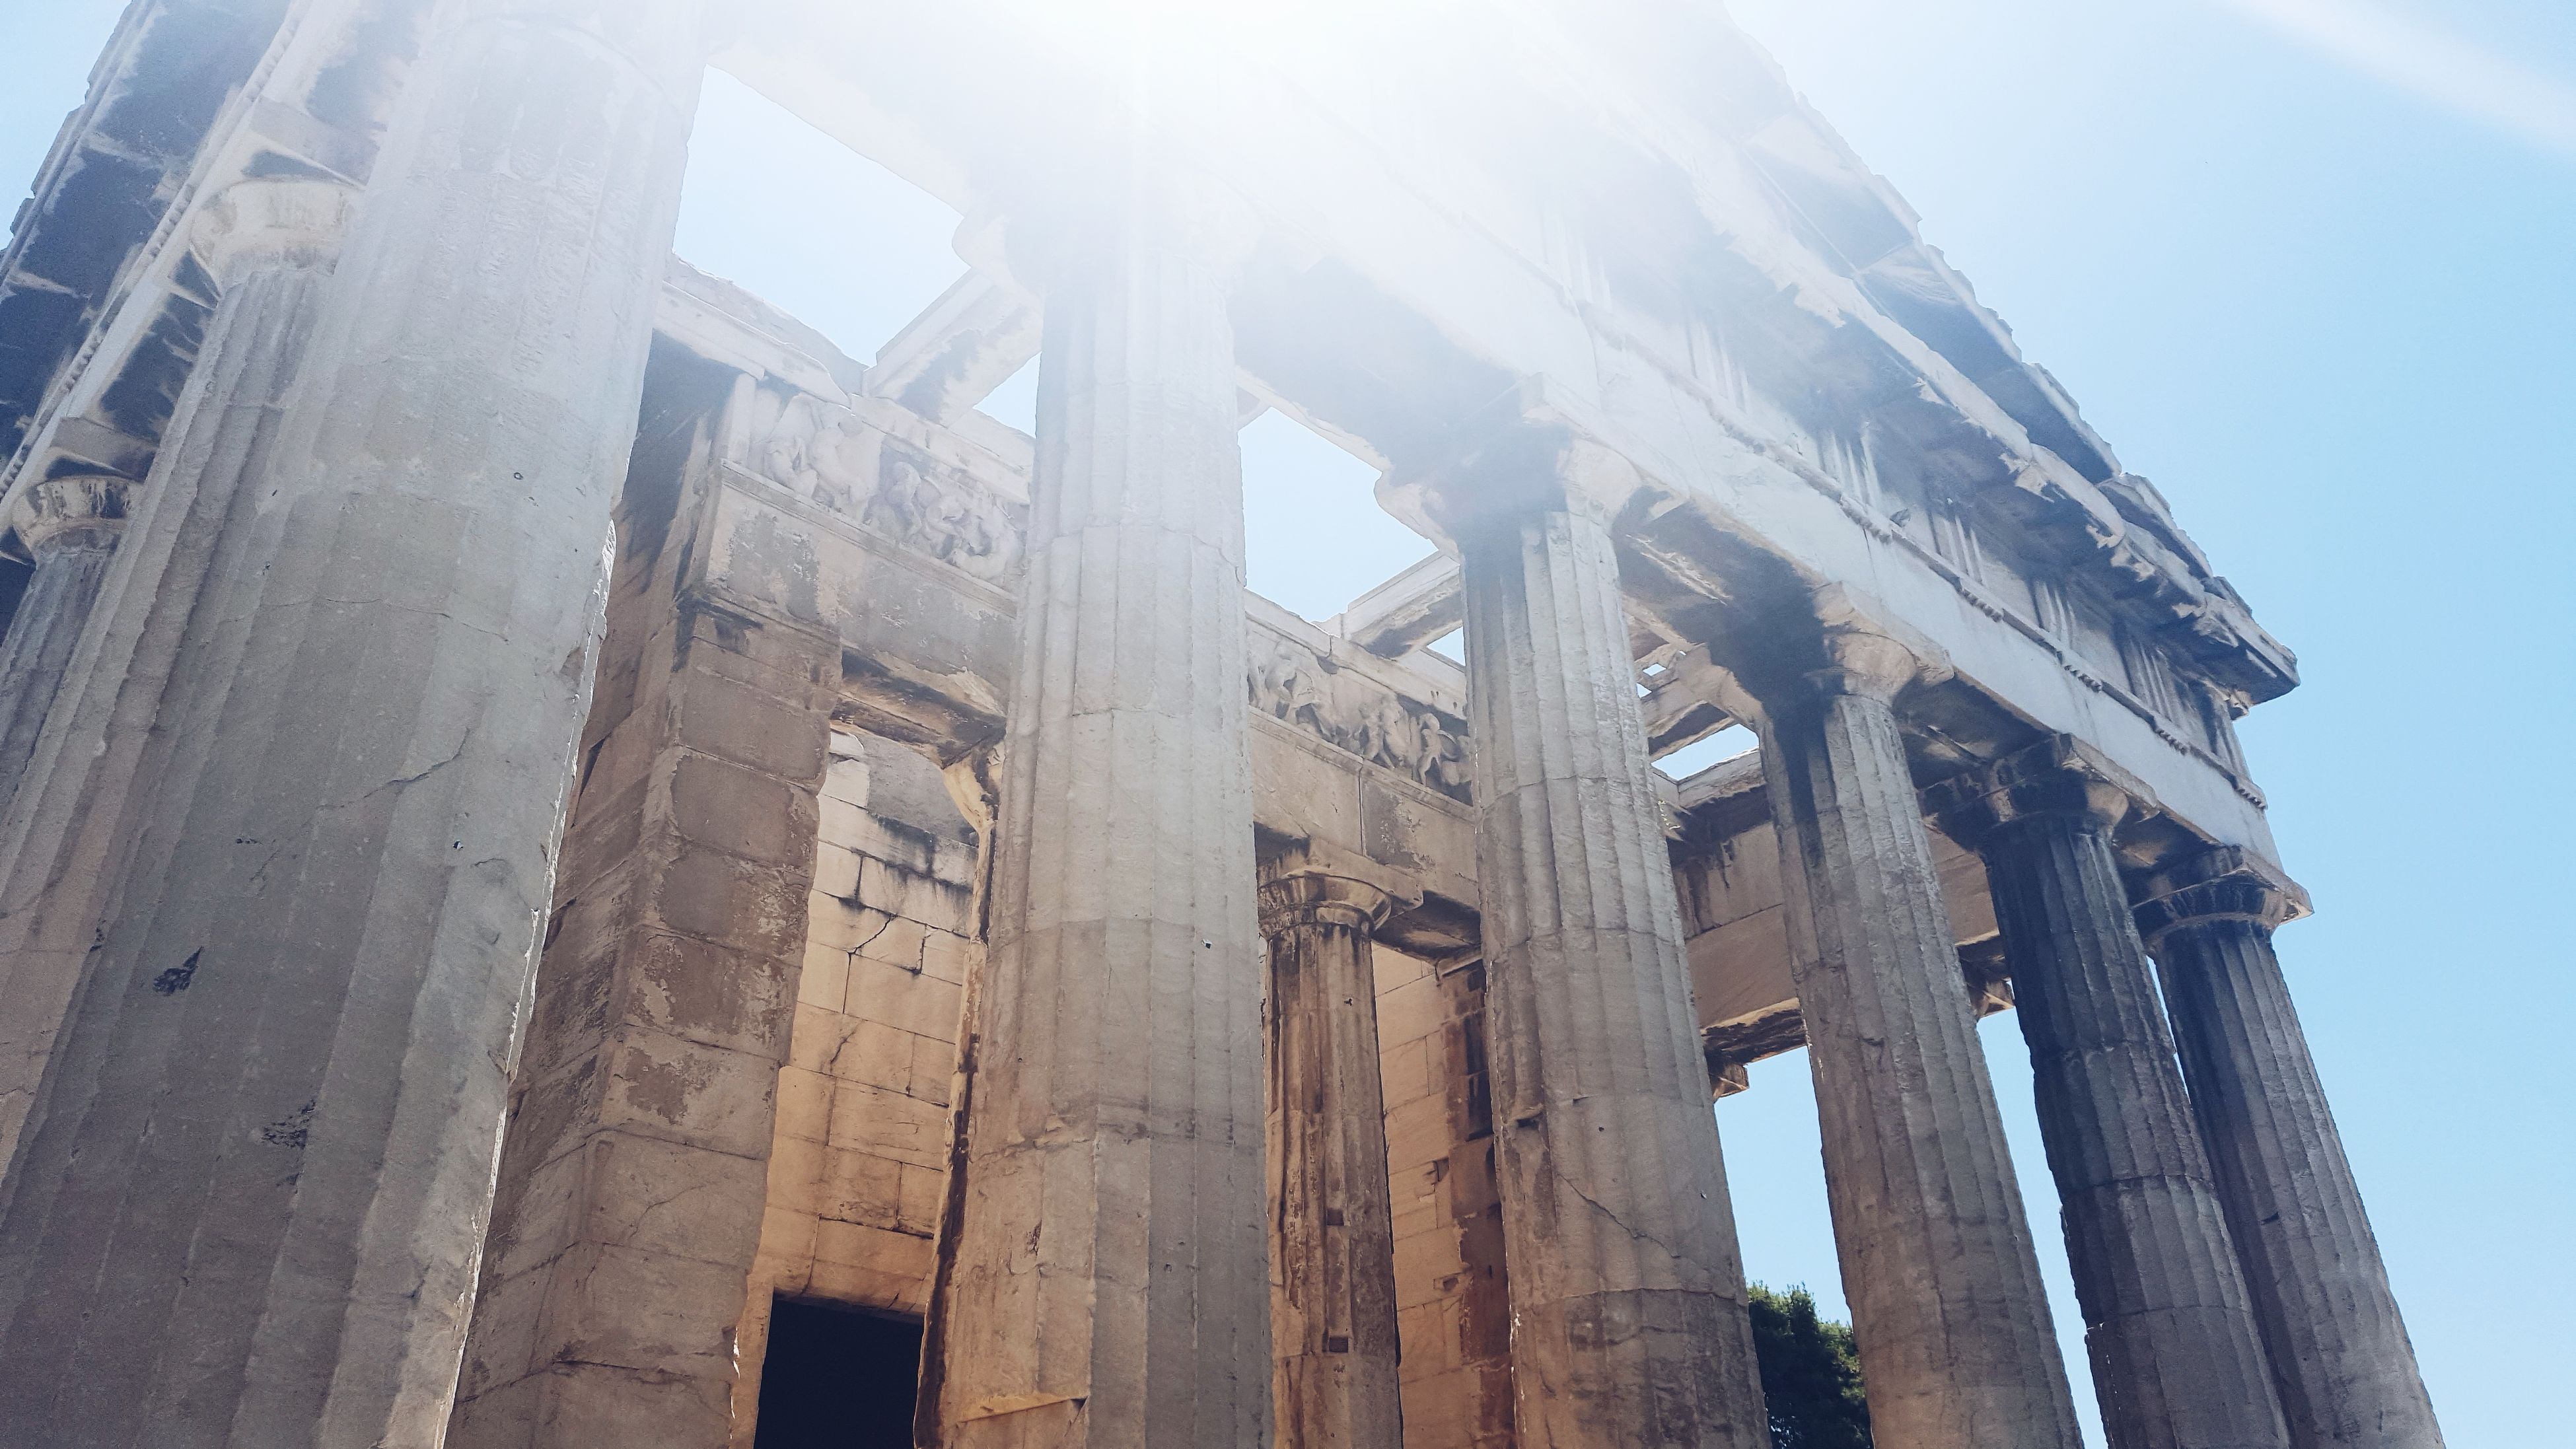 architecture, built structure, low angle view, building exterior, sky, history, sunlight, sunbeam, old, architectural column, sun, no people, day, outdoors, travel destinations, city, lens flare, famous place, building, old ruin